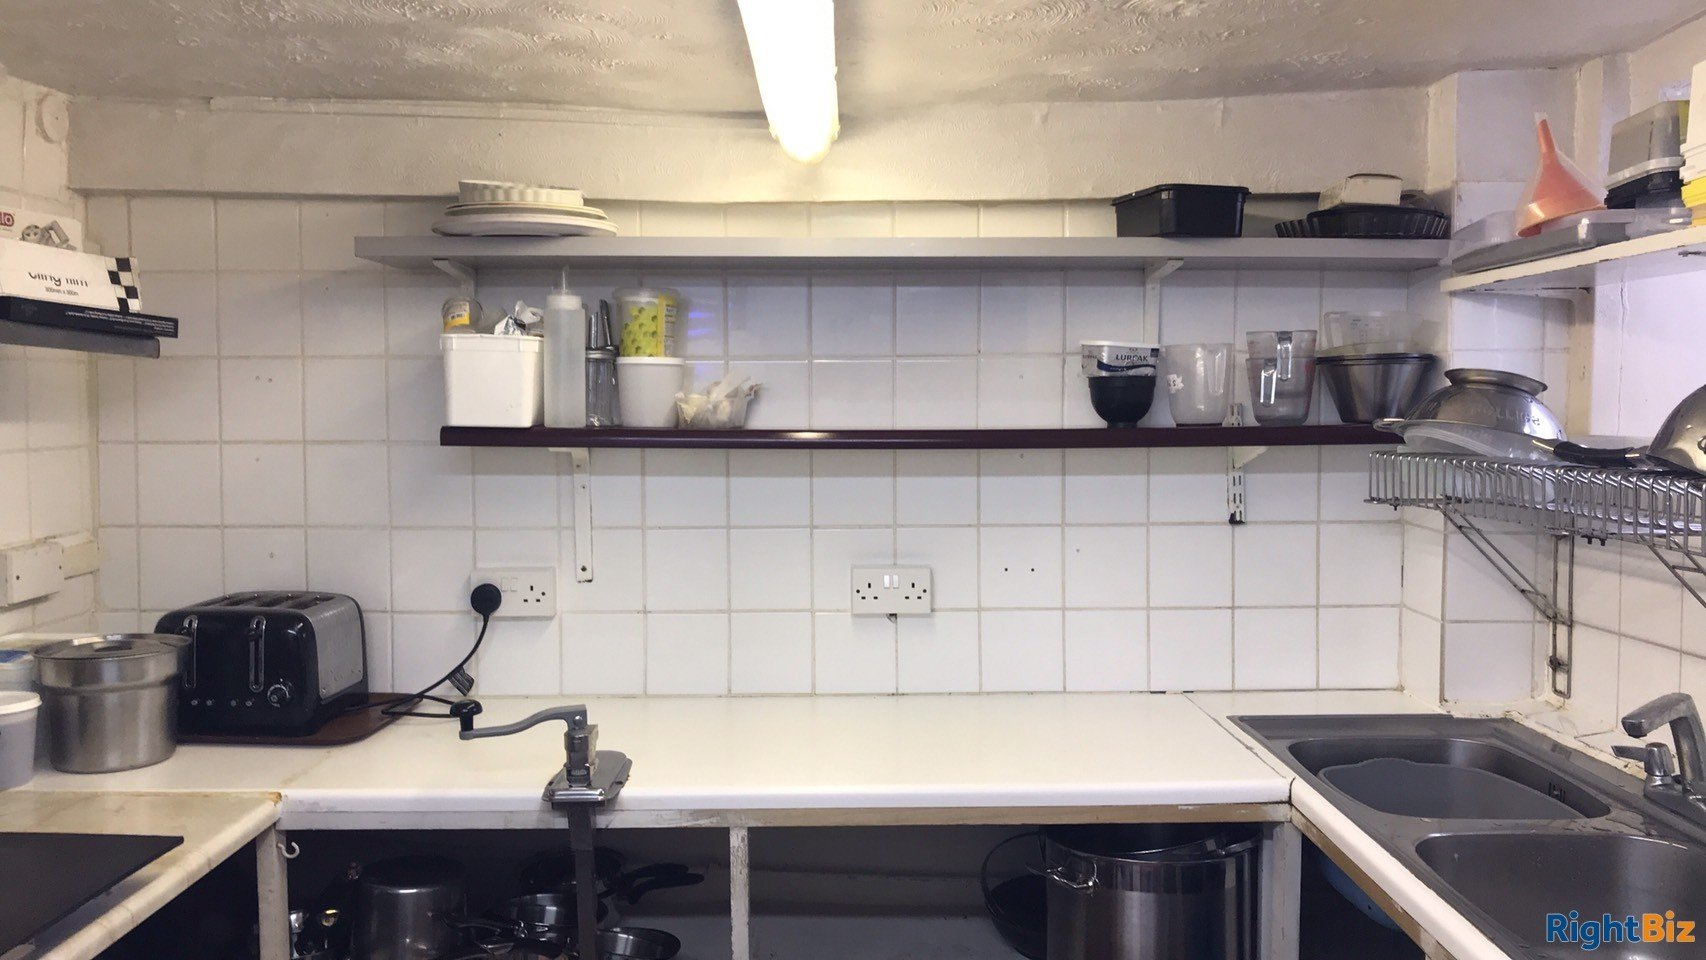 Thai/British Cafe for sale with A3 permission Reduced price - £5k annual rent - Image 15